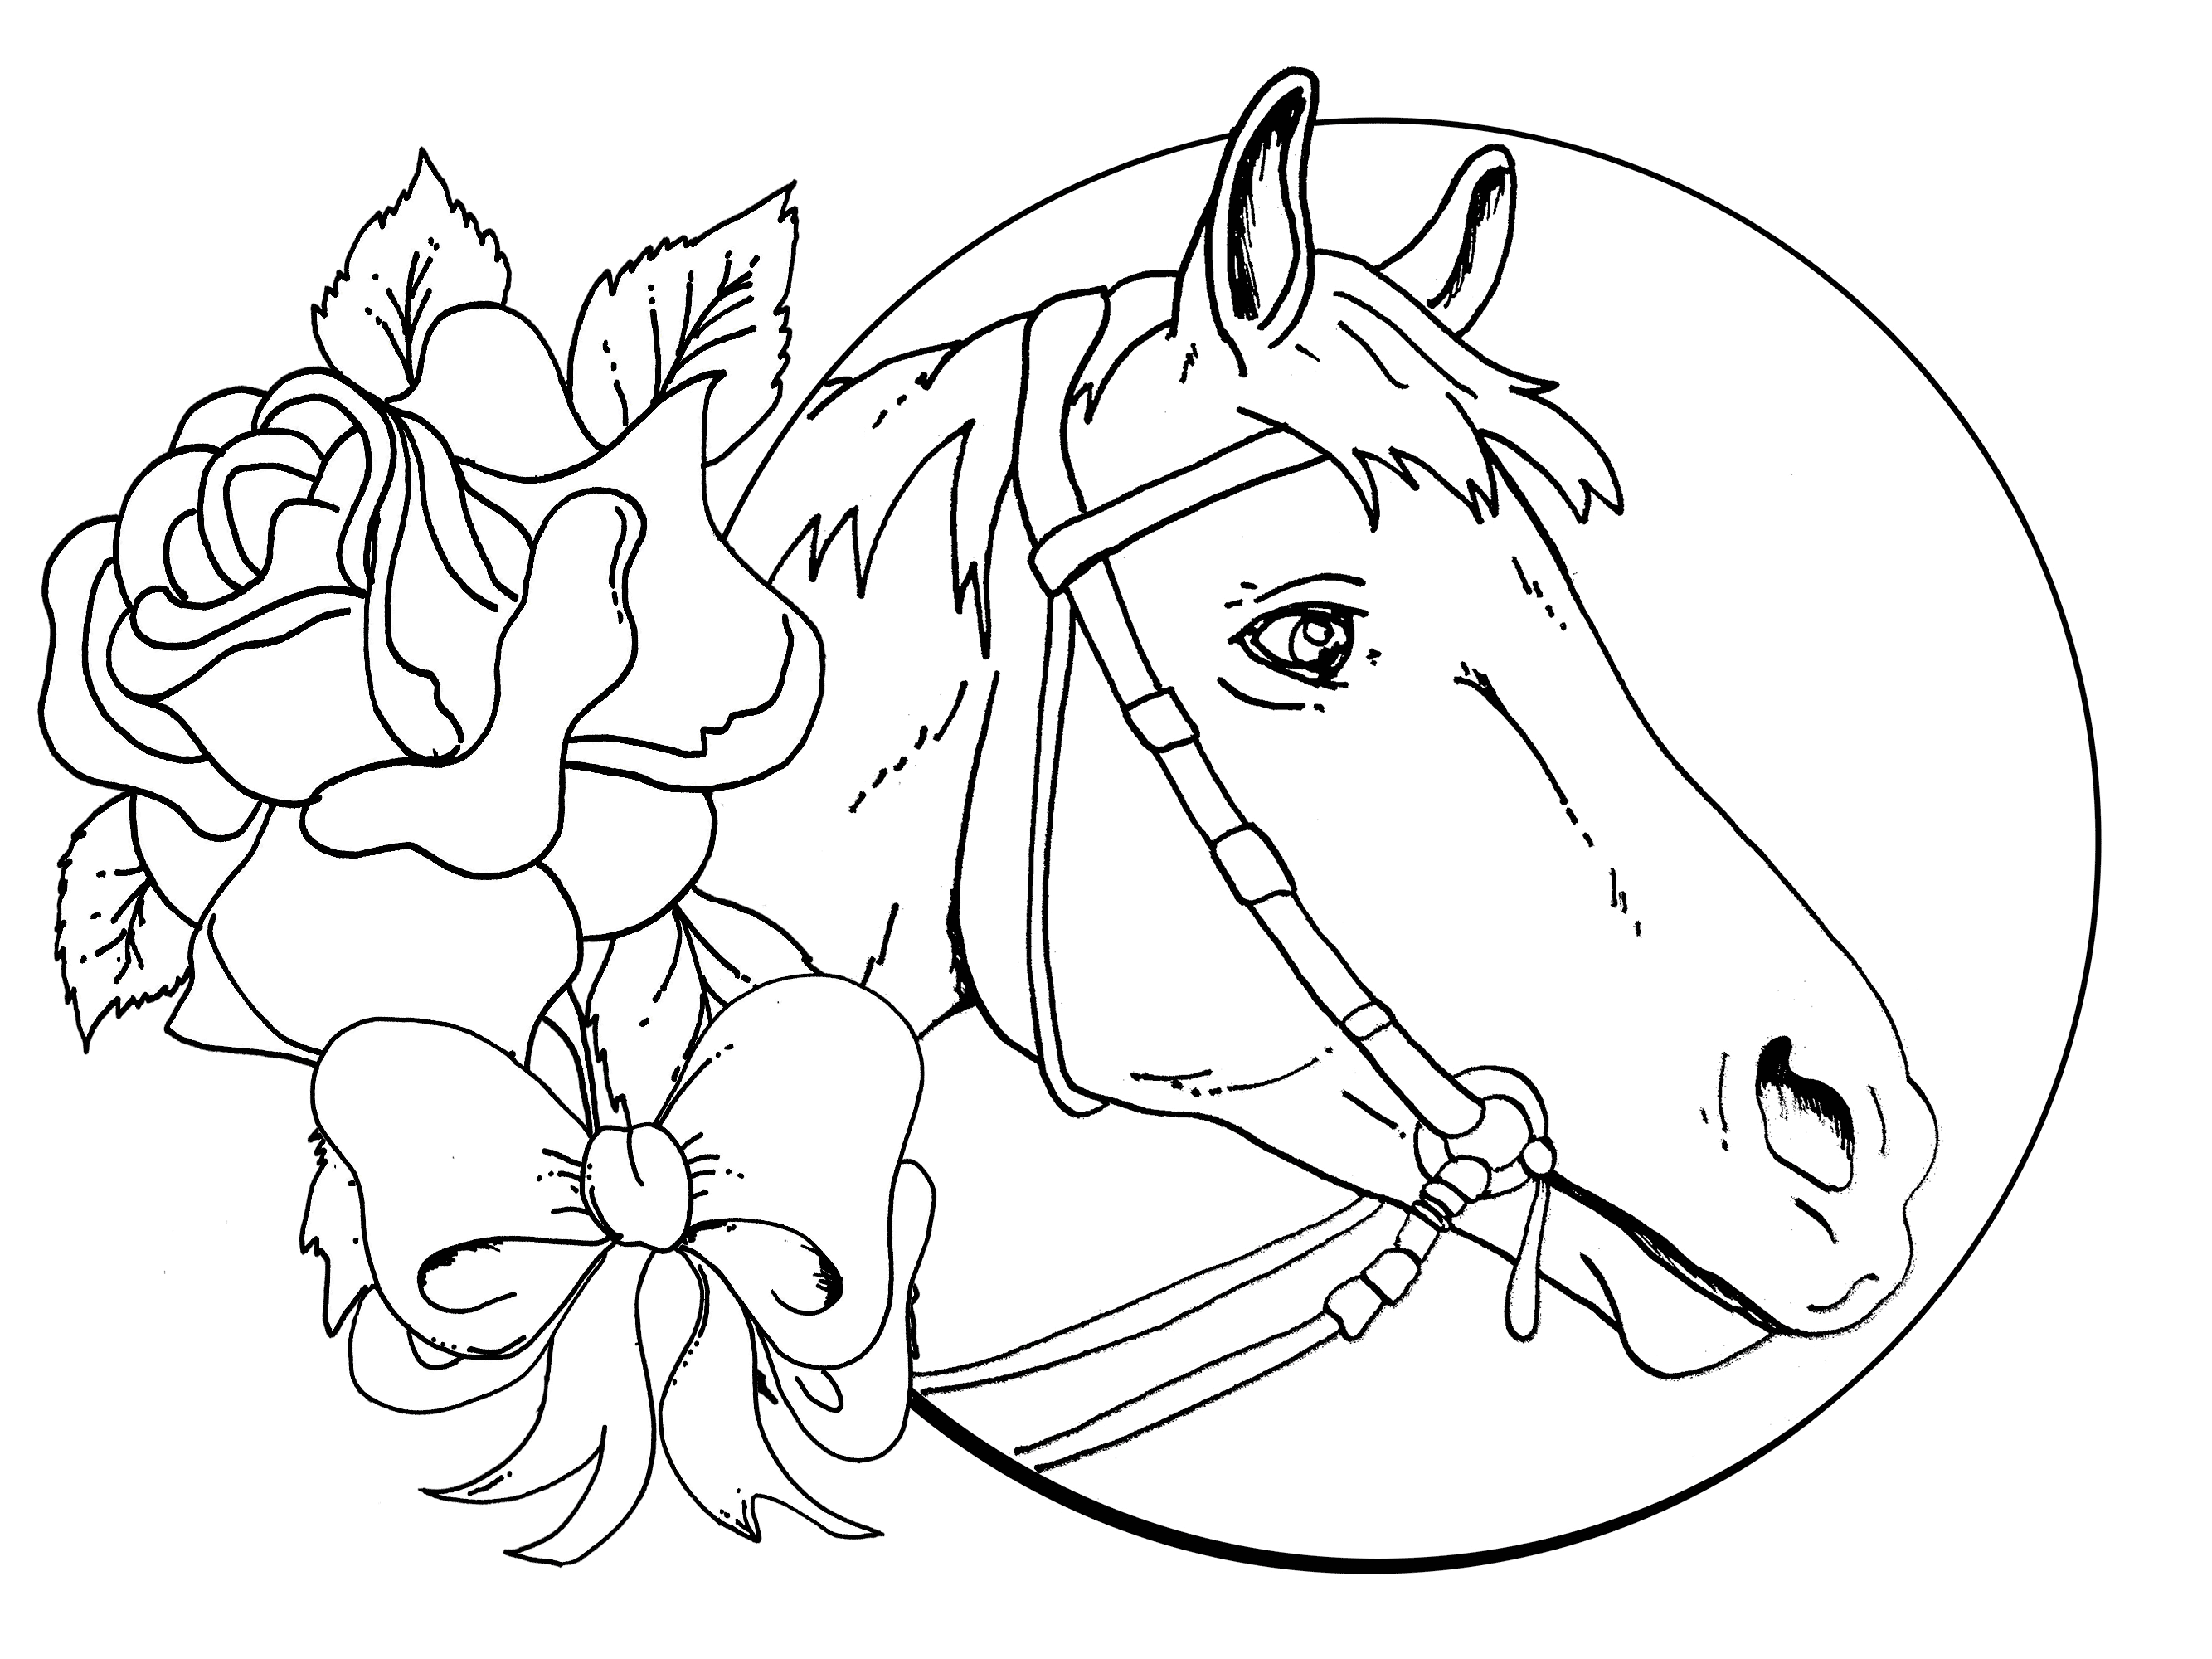 Uncategorized Girl Coloring Pages Printable coloring pages for girls 1 kids girls